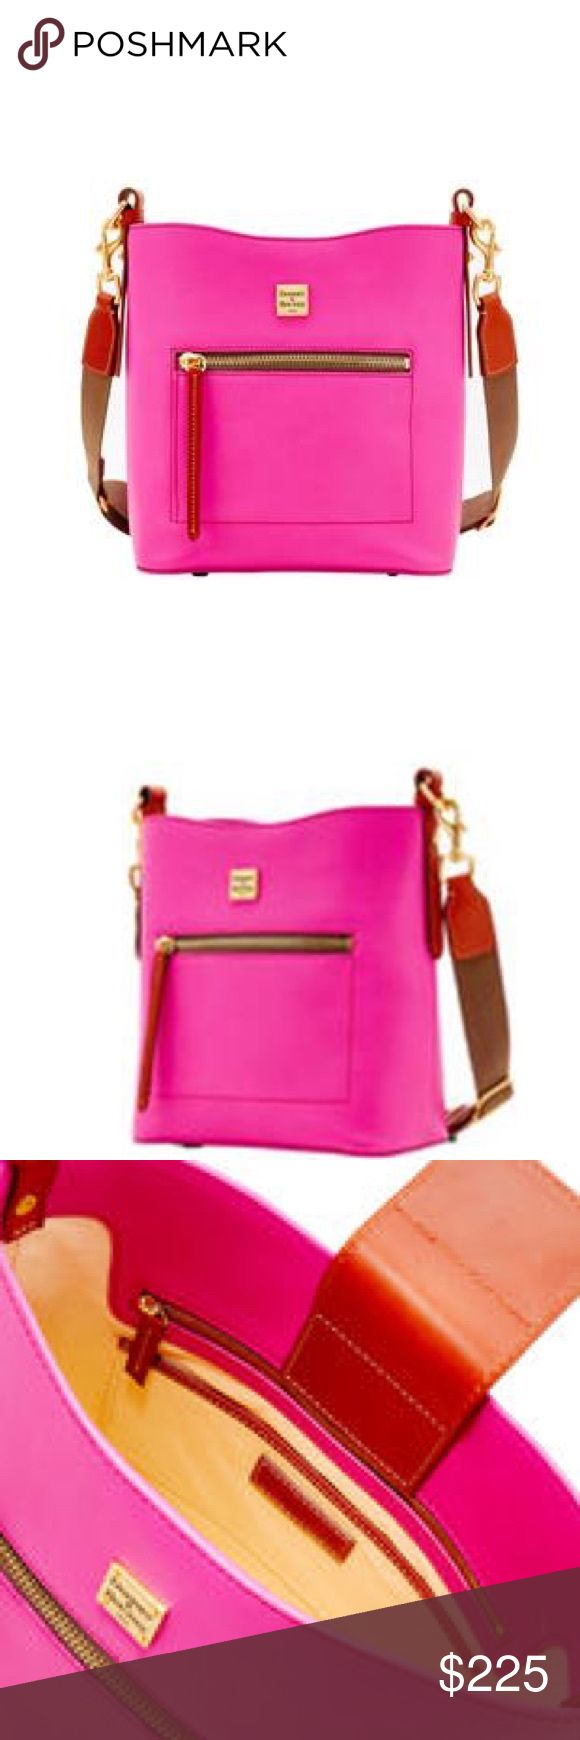 DOONEY & BOURKE LARGE RALEIGH ROXY BAG - NEW! BRAND NEW, NEVER USED! SELLS FOR $328 IN STORES NOW! FINE GRAINED ITALIAN CALFSKIN WITH BUTTER SOFT LEATHER INTERIOR. WIDE ADJUSTABLE SHOULDER STRAP. OUTSIDE ZIPPER POCKET. INTERIOR HAS 4 LARGE POCKETS (2 ZIPPERED) AND A MAGNETIC CLOSURE. BEAUTIFUL FUCHSIA COLOR! COMES WITH D & B DUST BAG. Dooney & Bourke Bags Shoulder Bags